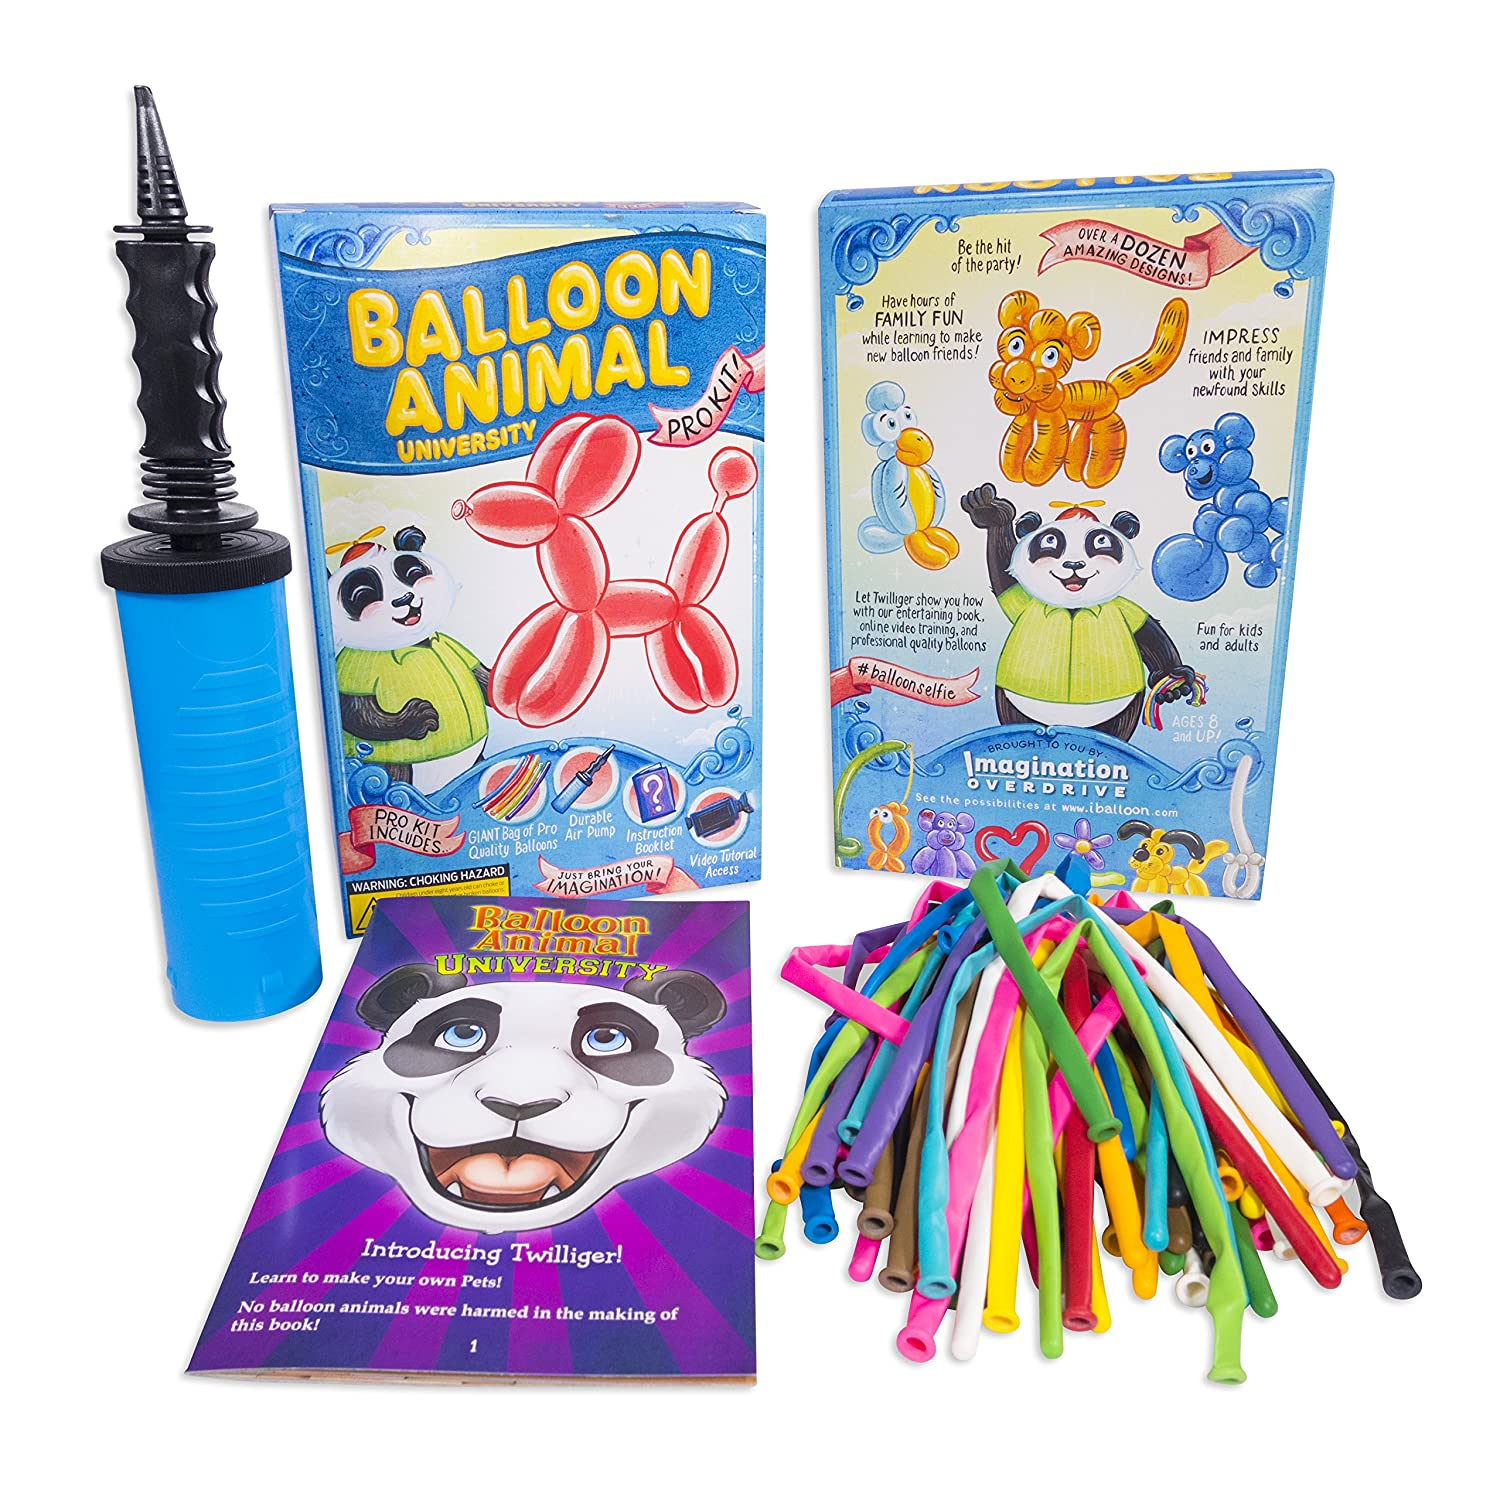 755eec4091dc Balloon Animal University PRO Kit. Now with MORE creations! 50ct Custom  Assortment with Qualatex balloons